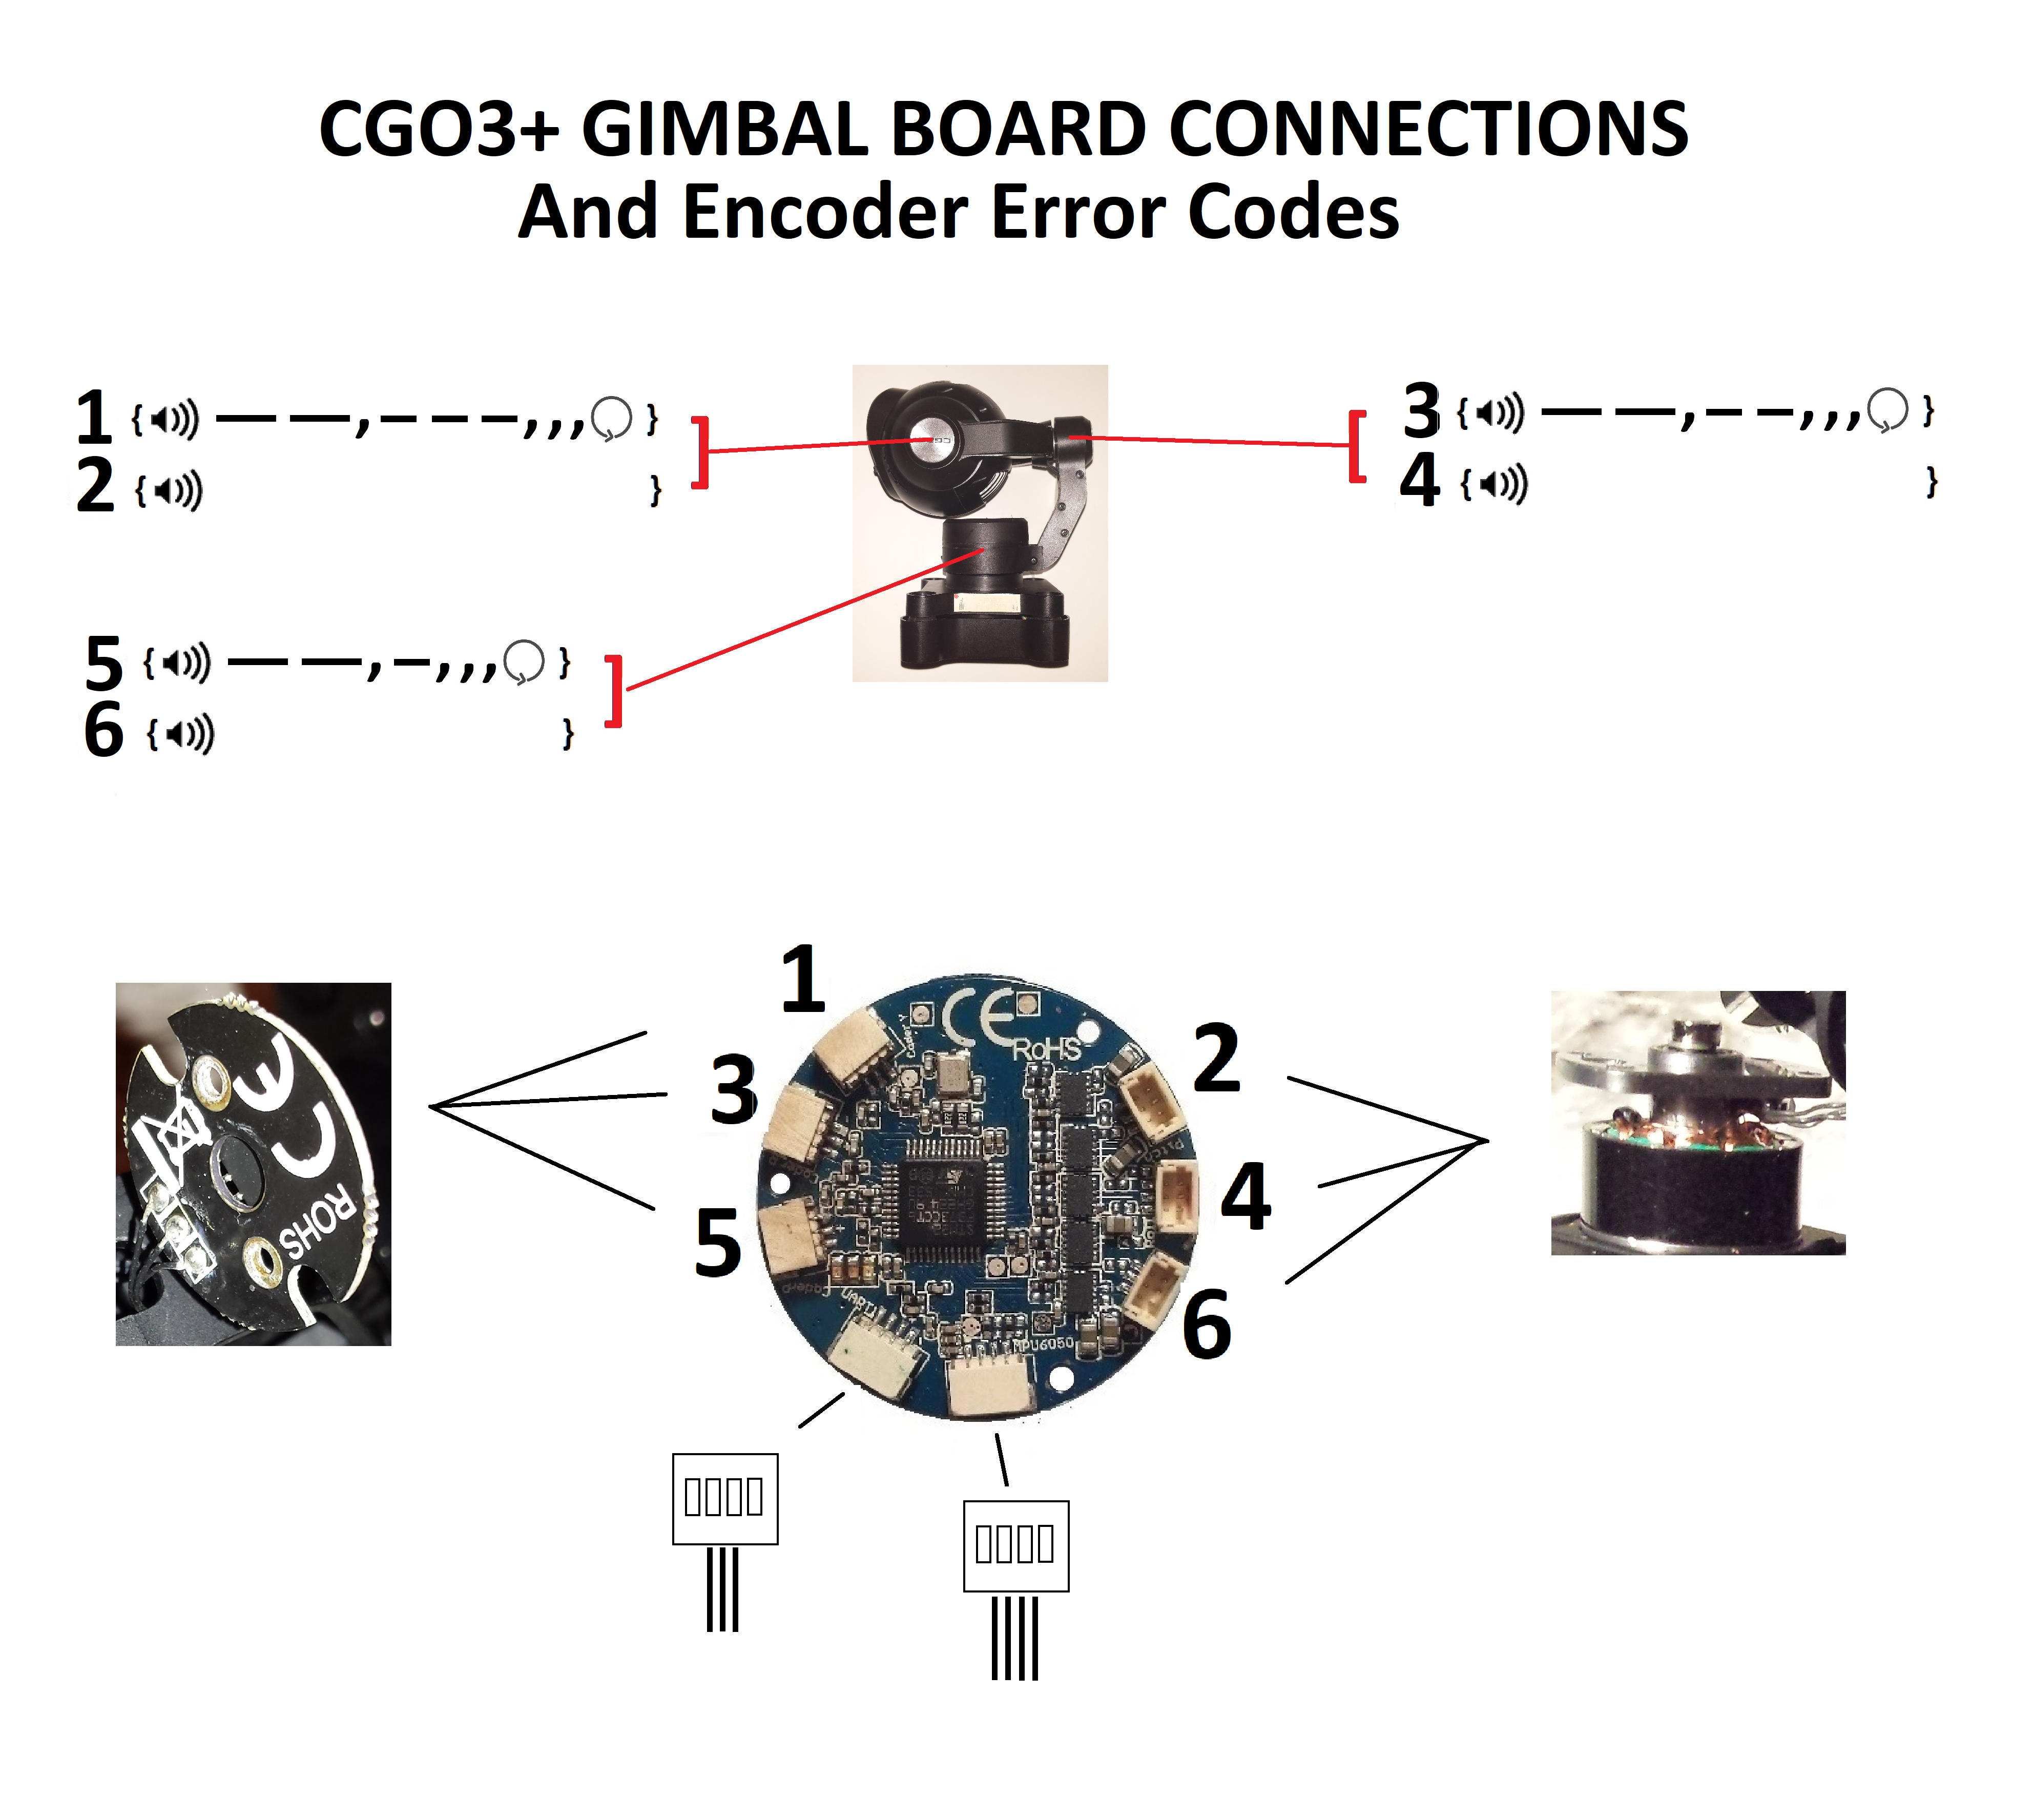 cgo3+ Gimbal Board  Connections Pictoral.png